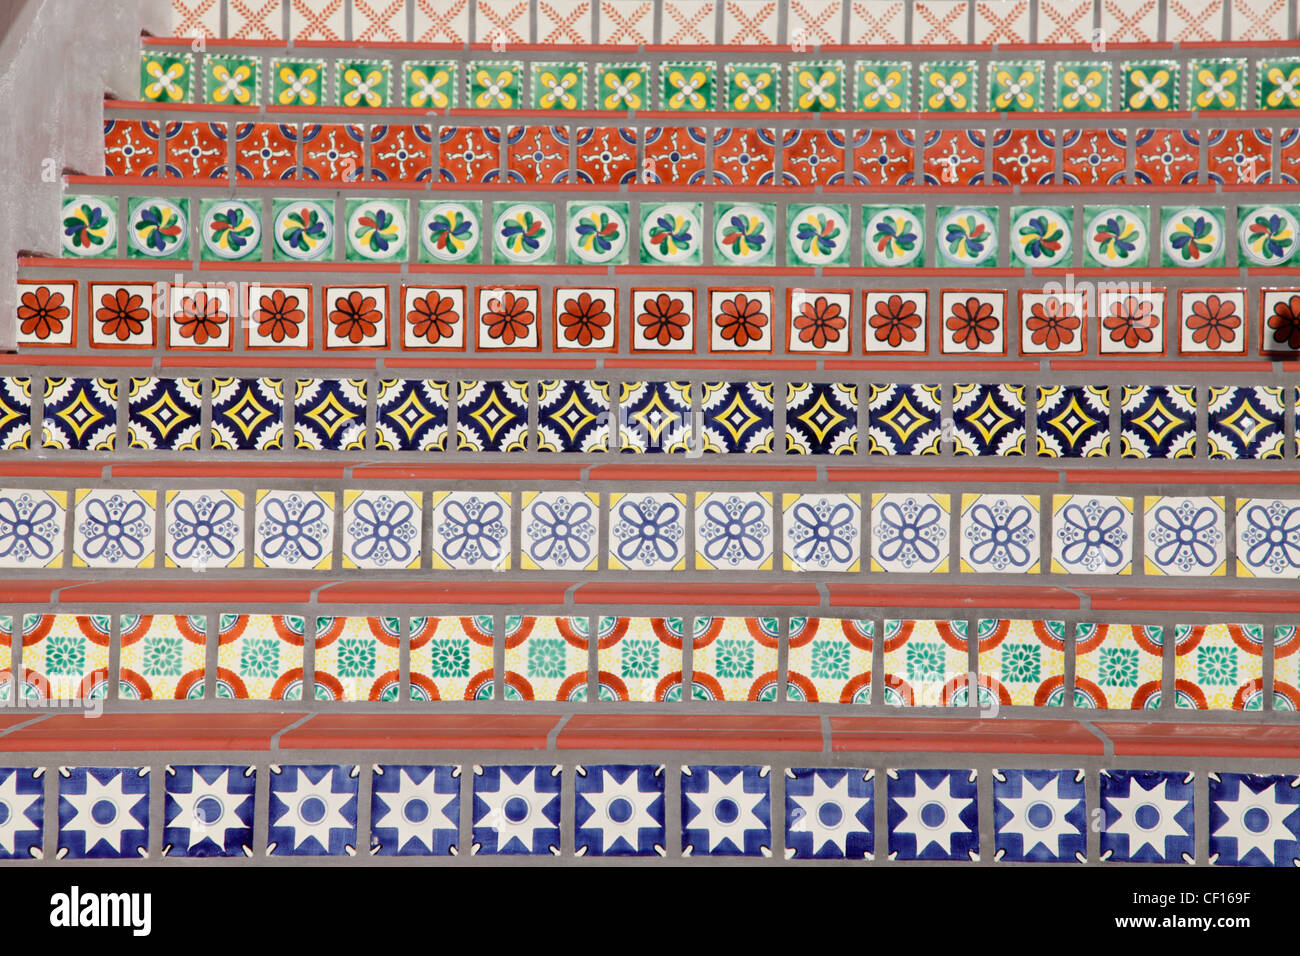 DECORATED SPANISH STYLE TILED STEPS Stock Photo